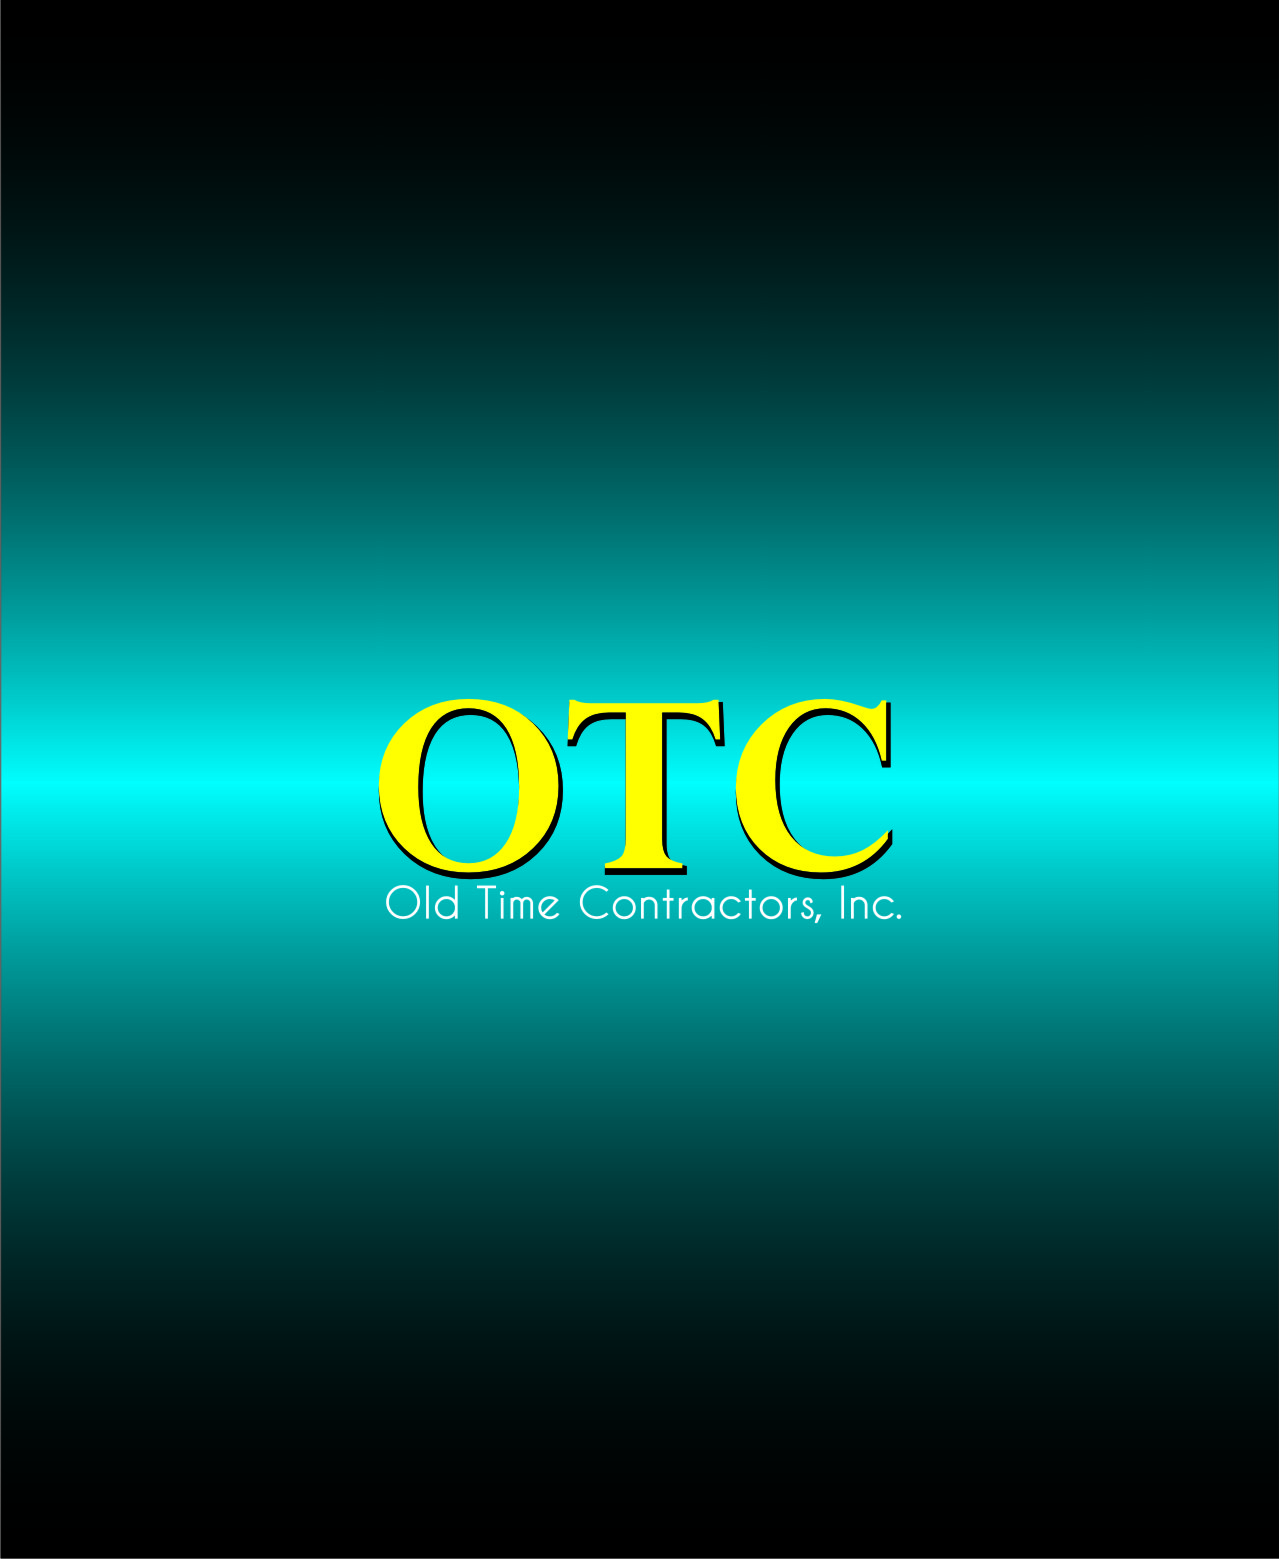 Logo Design by Private User - Entry No. 18 in the Logo Design Contest Old Time Contractors, Inc. (new brand:  OTC, Inc.) Logo Design.